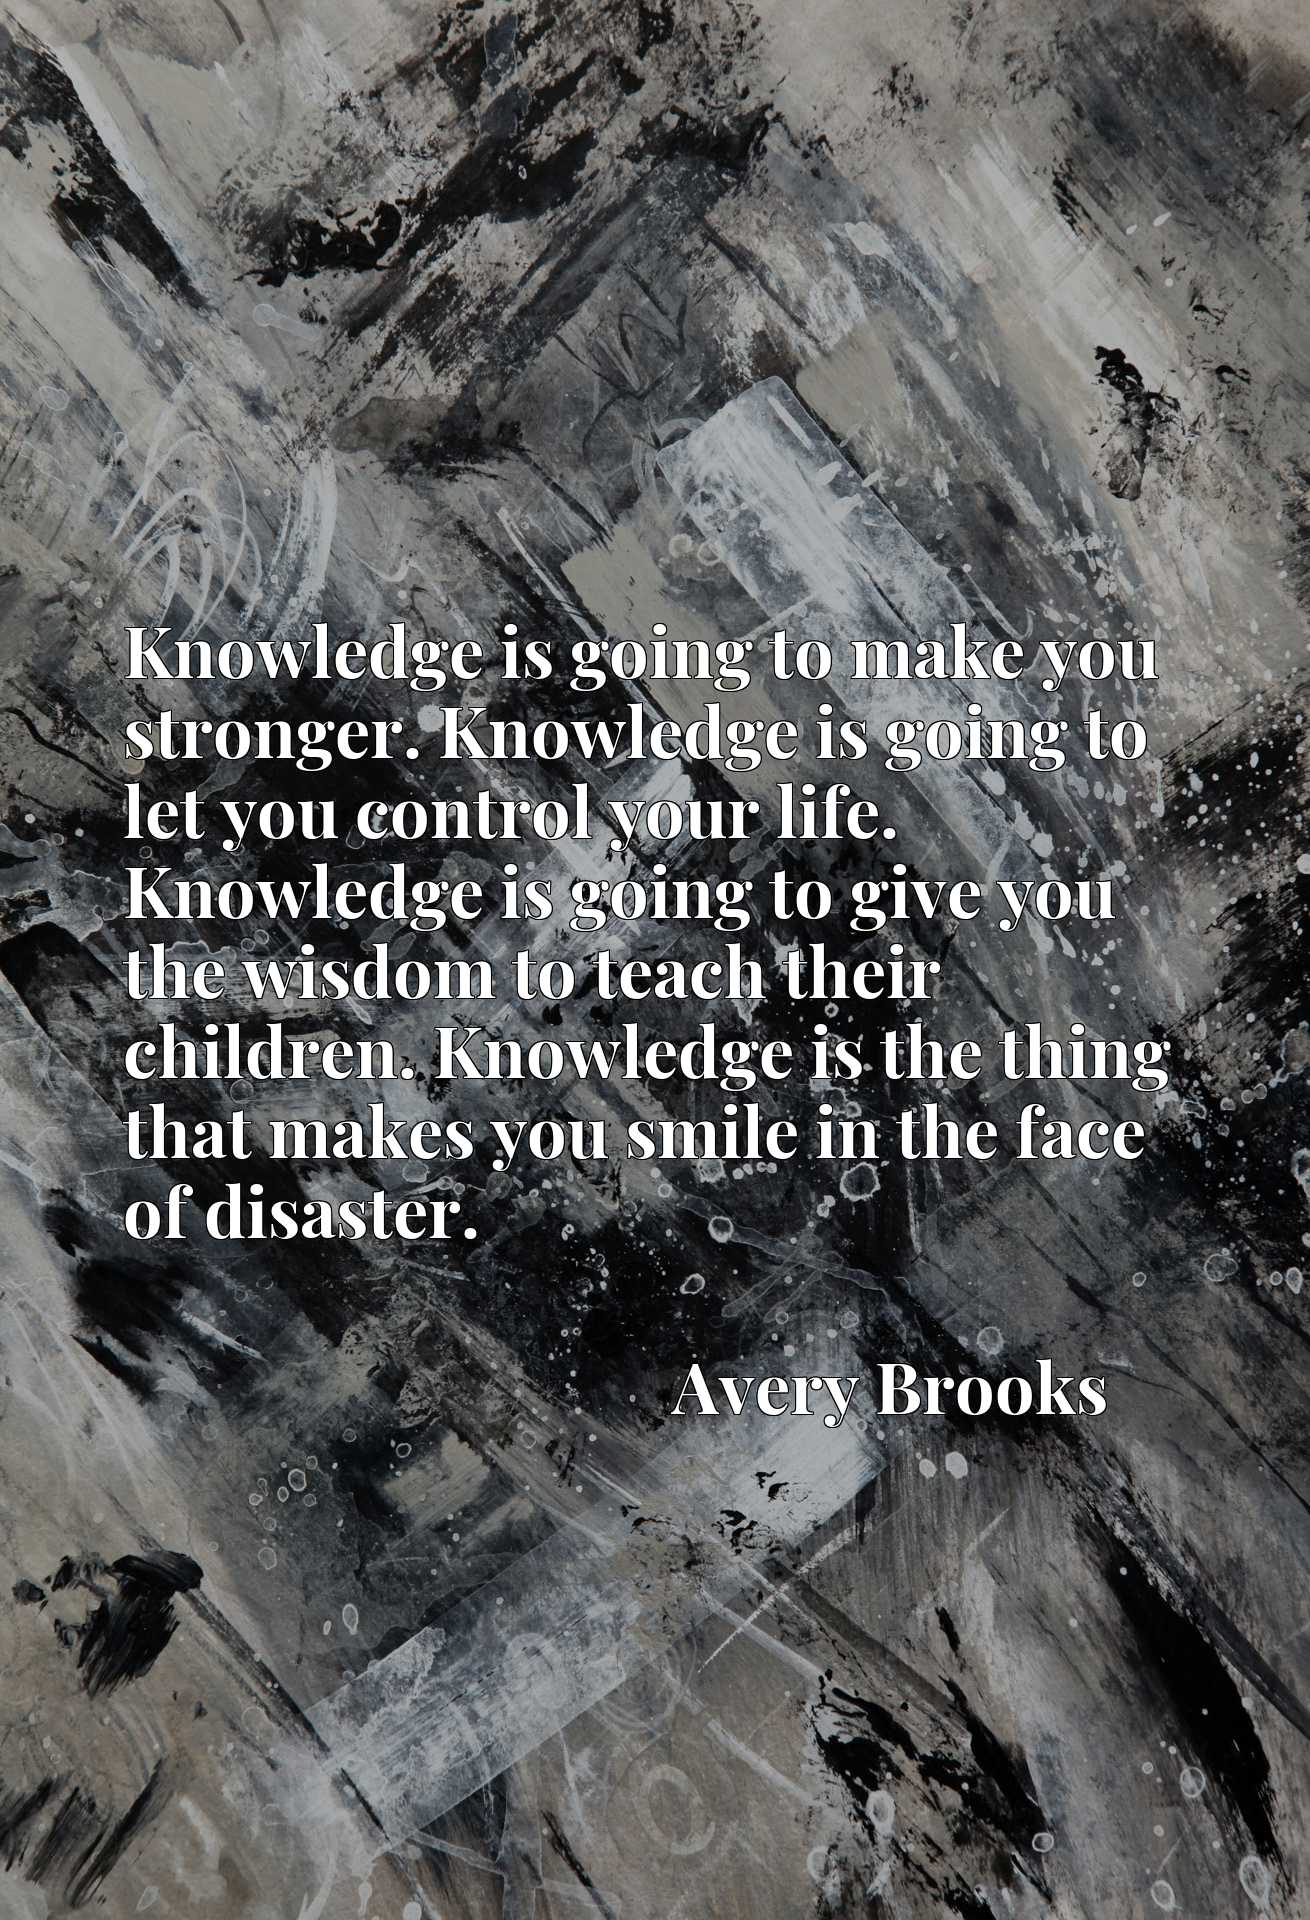 Knowledge is going to make you stronger. Knowledge is going to let you control your life. Knowledge is going to give you the wisdom to teach their children. Knowledge is the thing that makes you smile in the face of disaster.